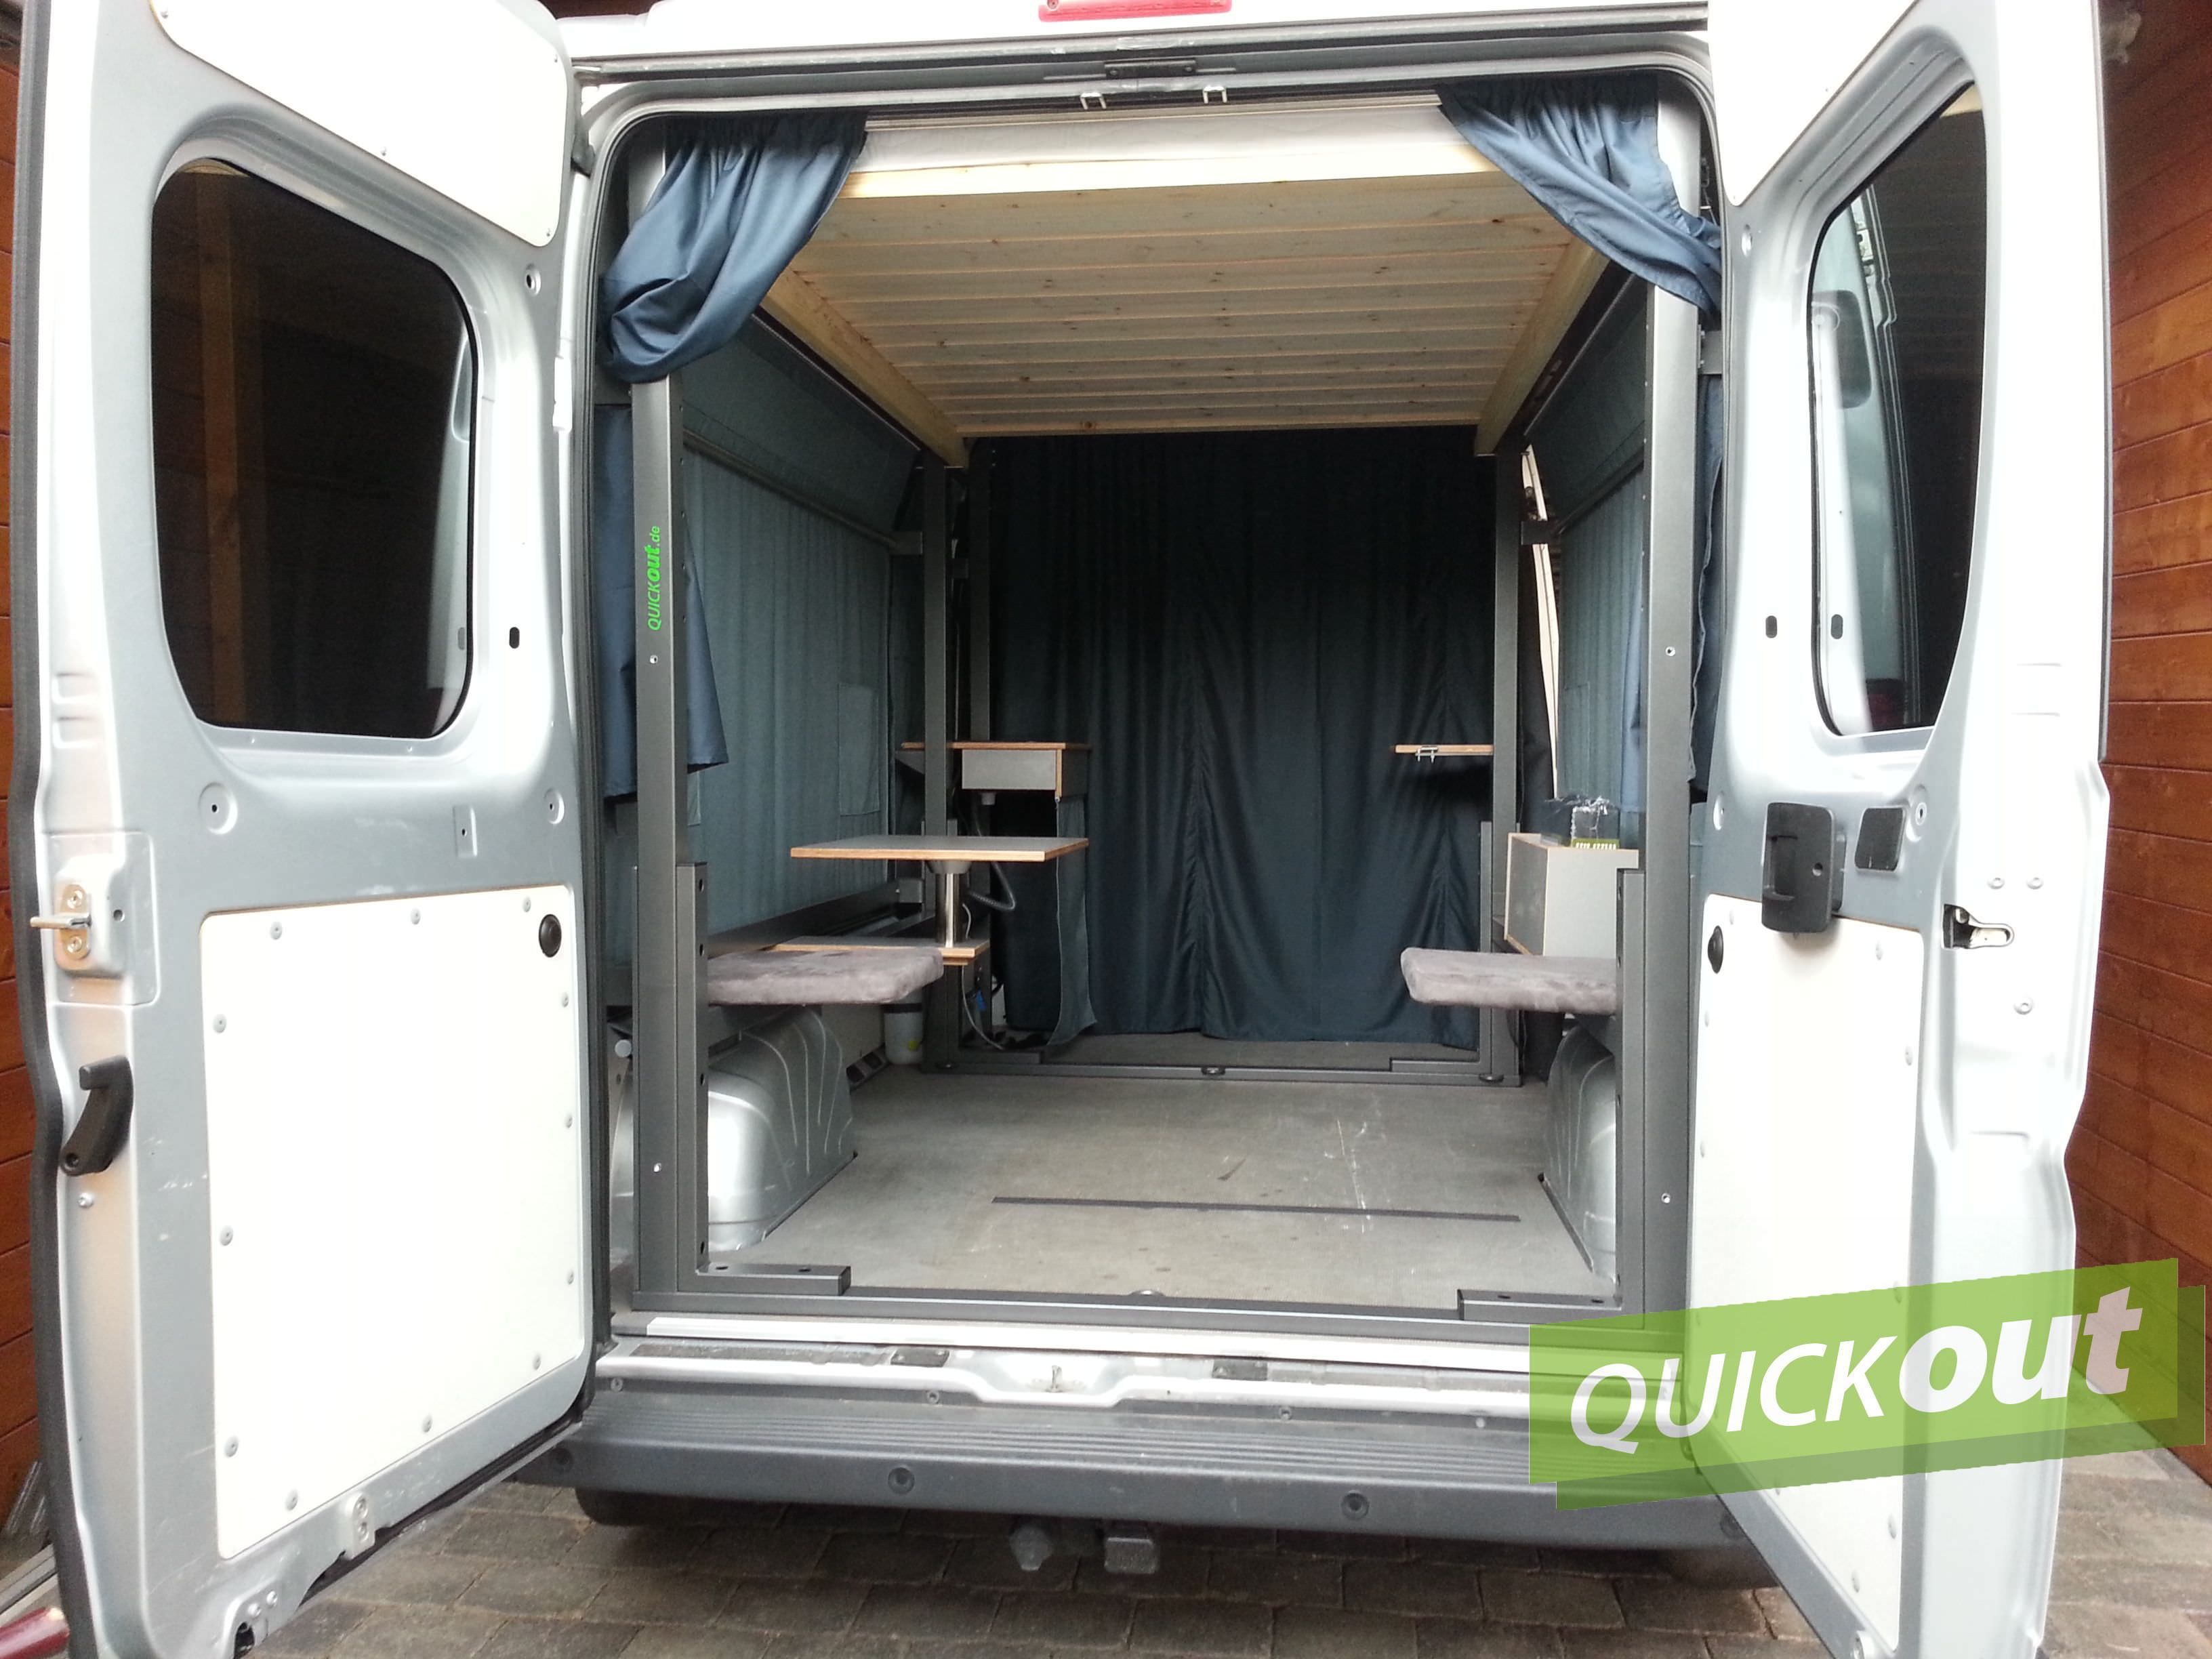 fiat ducato quickout wohnmobilausbau. Black Bedroom Furniture Sets. Home Design Ideas